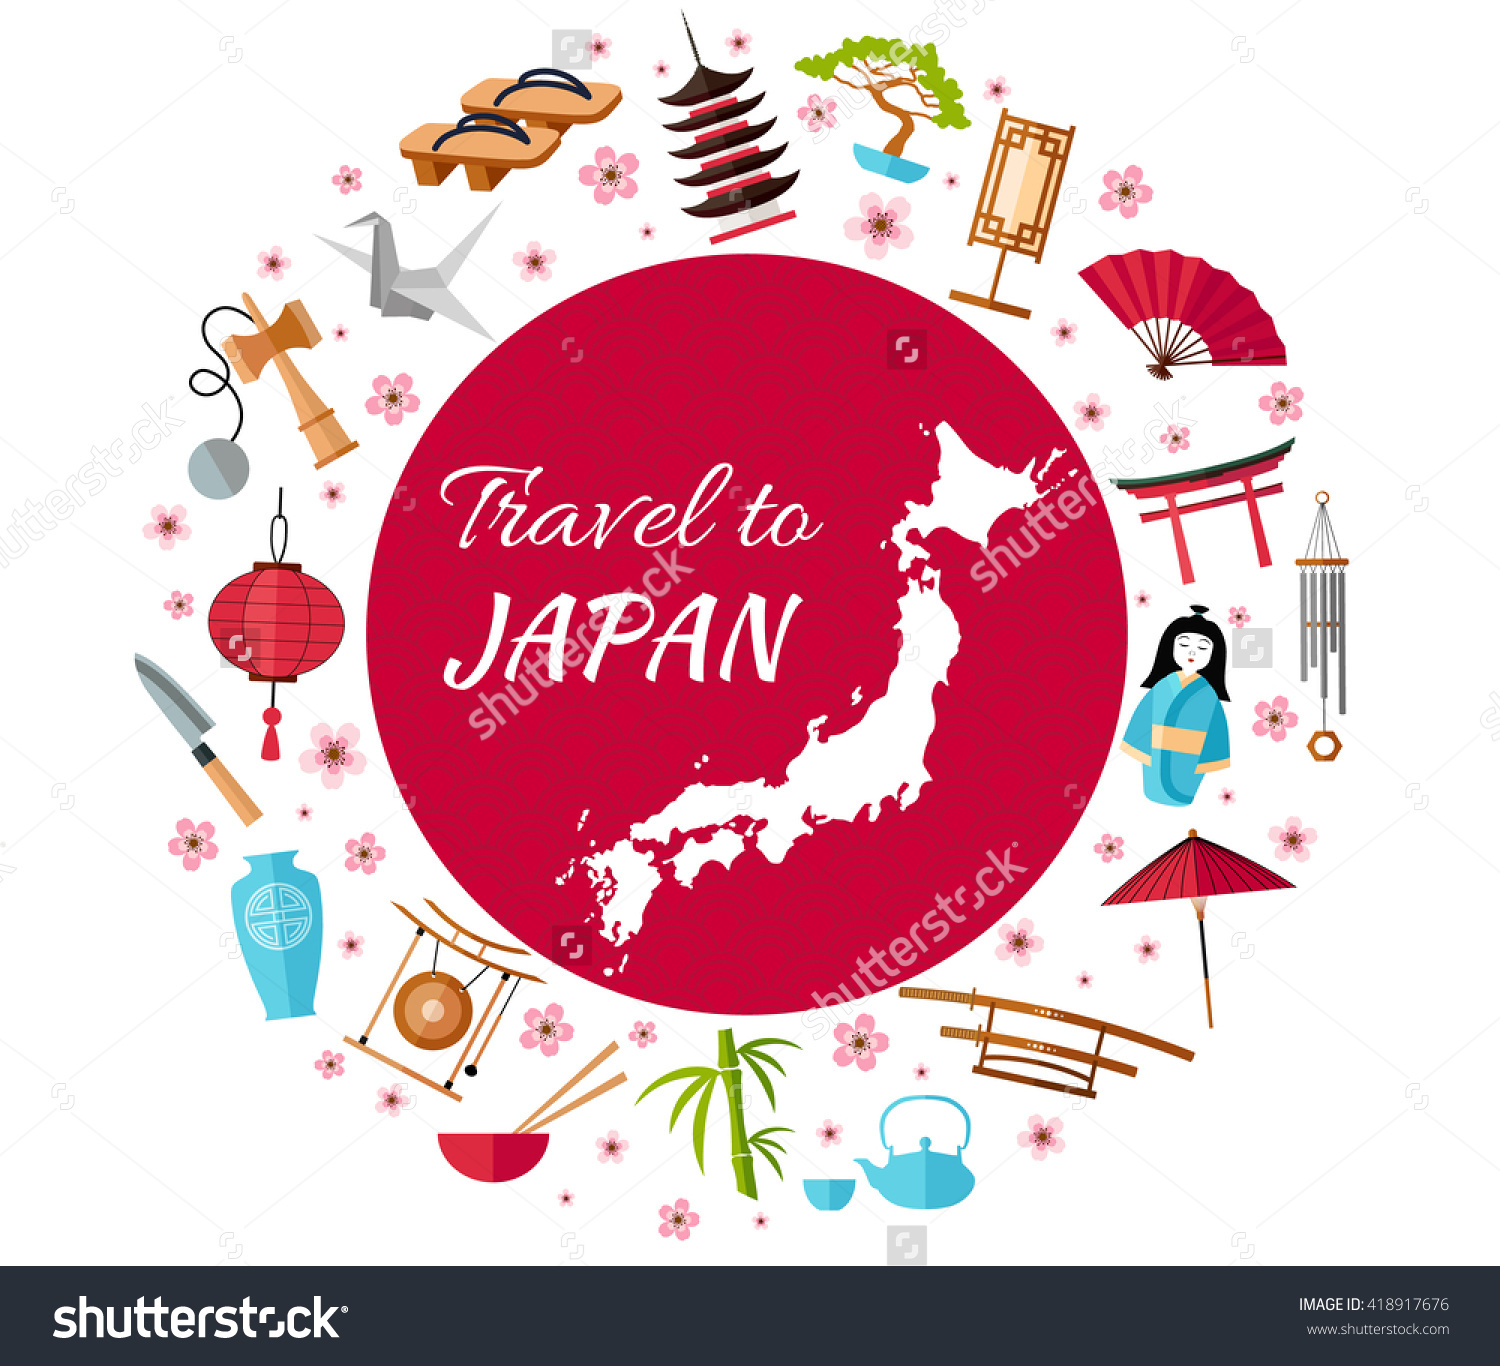 Japan Travel Banner Icons Souvenirs Design Stock Vector 418917676.